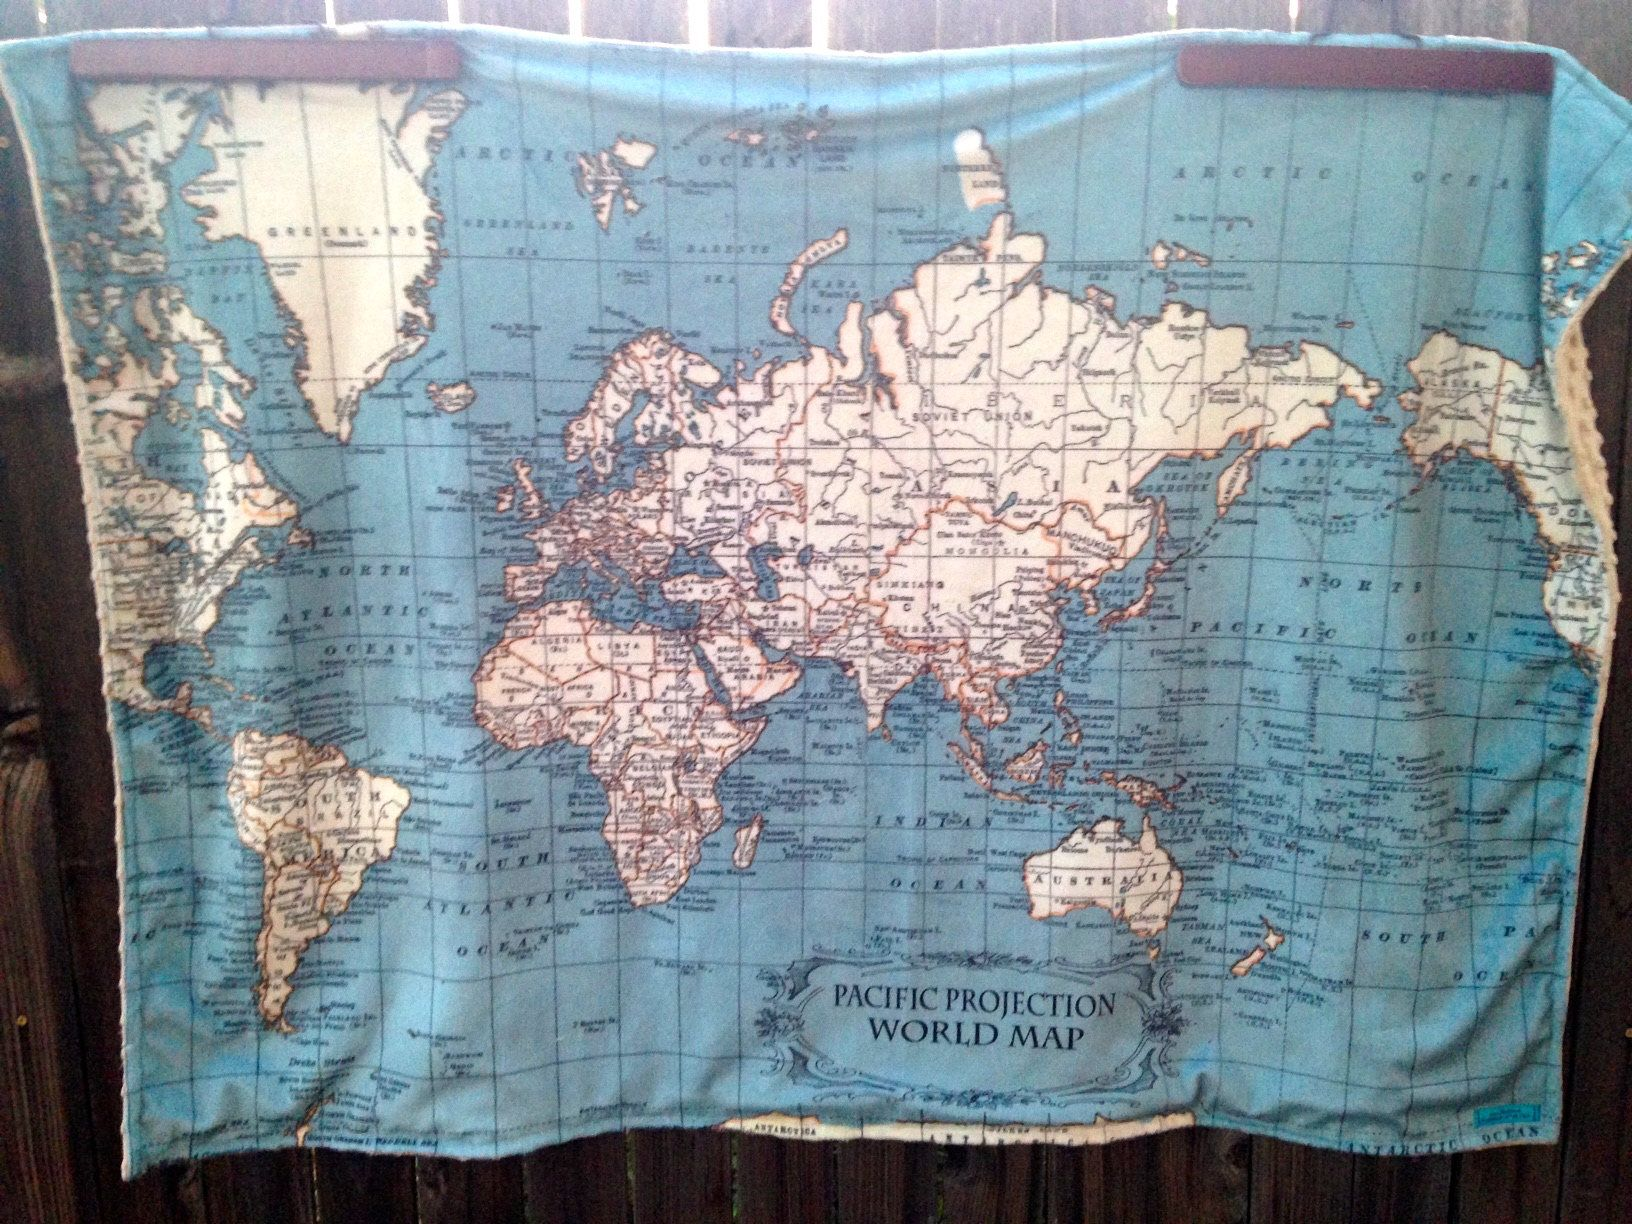 World map minky blanket double sided minky baby cuddle blanky world map minky blanket double sided minky baby cuddle blanky wheelchair lap gumiabroncs Images